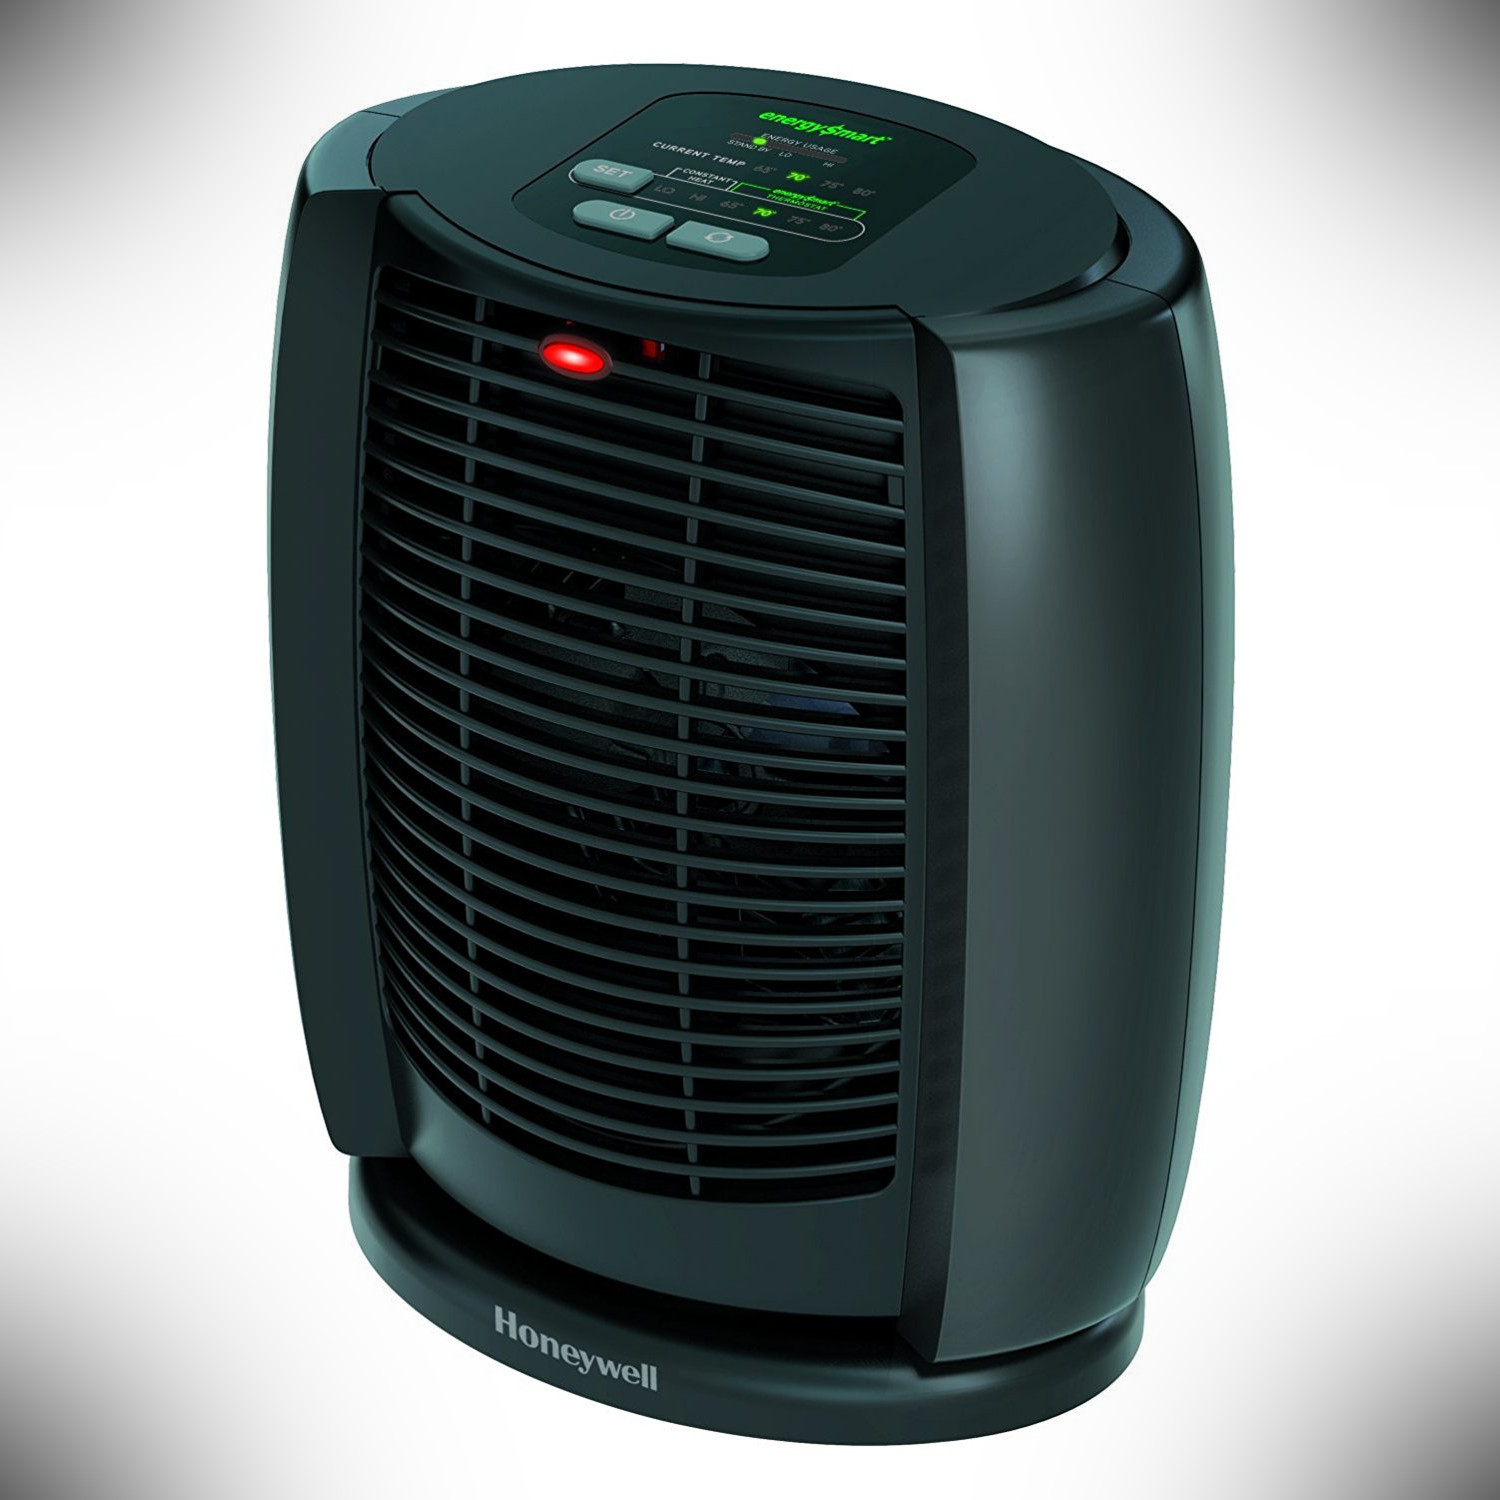 Honeywell HZ-7300 Cool Touch Oscillating Space Heater